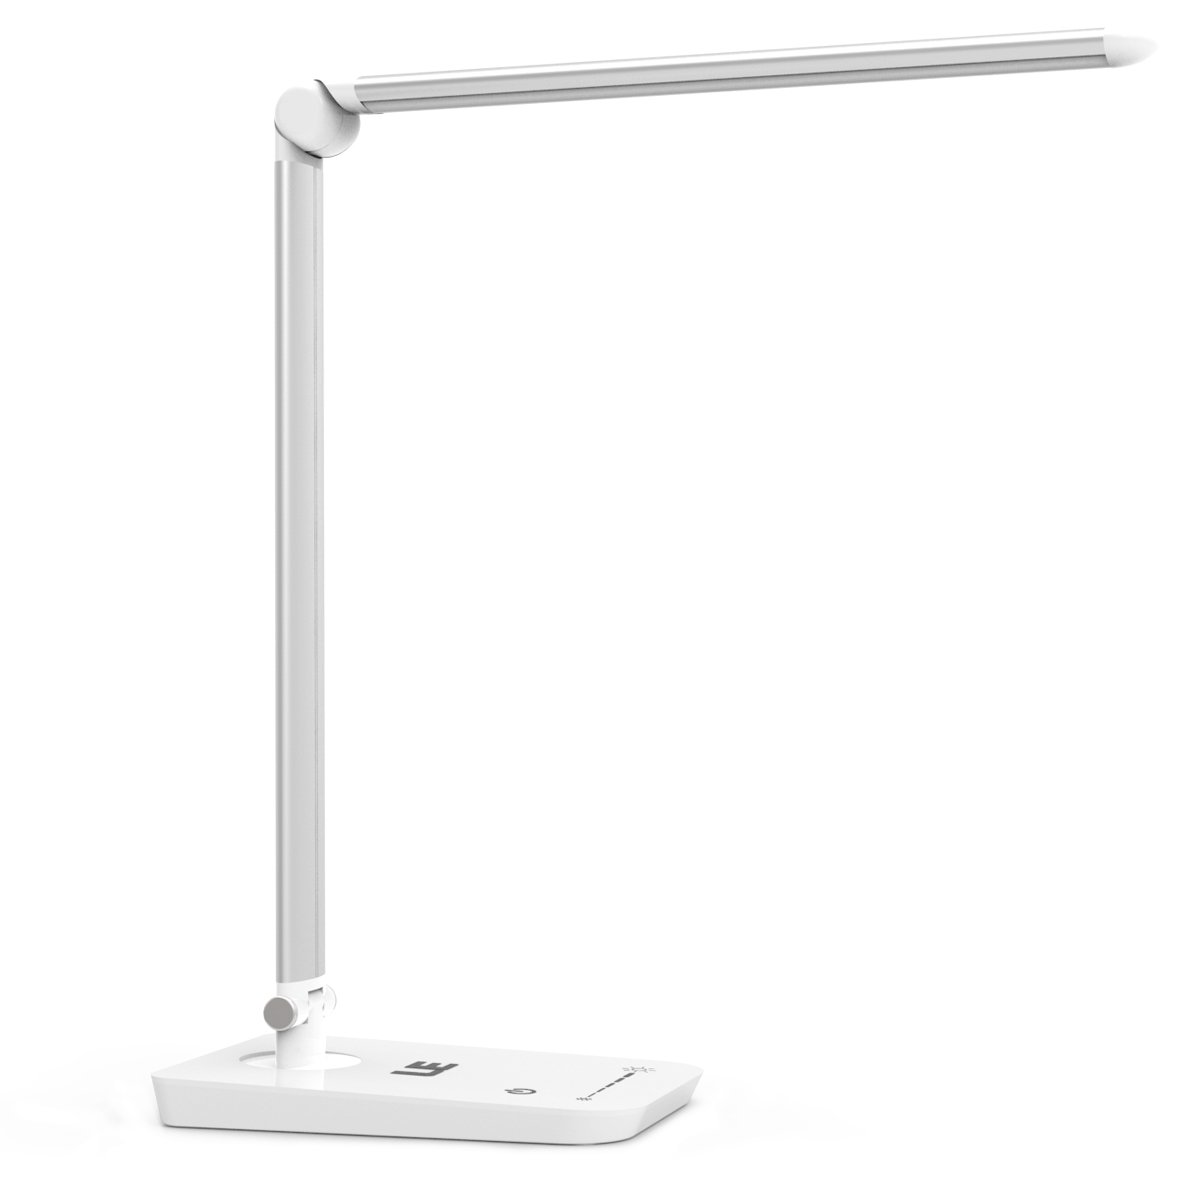 LE Dimmable LED Desk Lamp, 7 Dimming Levels, Eye-care, 8W, Touch Sensitive, Daylight White, Folding Desk Lamps, Reading Lamps, Bedroom Lamps (Black) Lighting EVER 3100012-DW-US